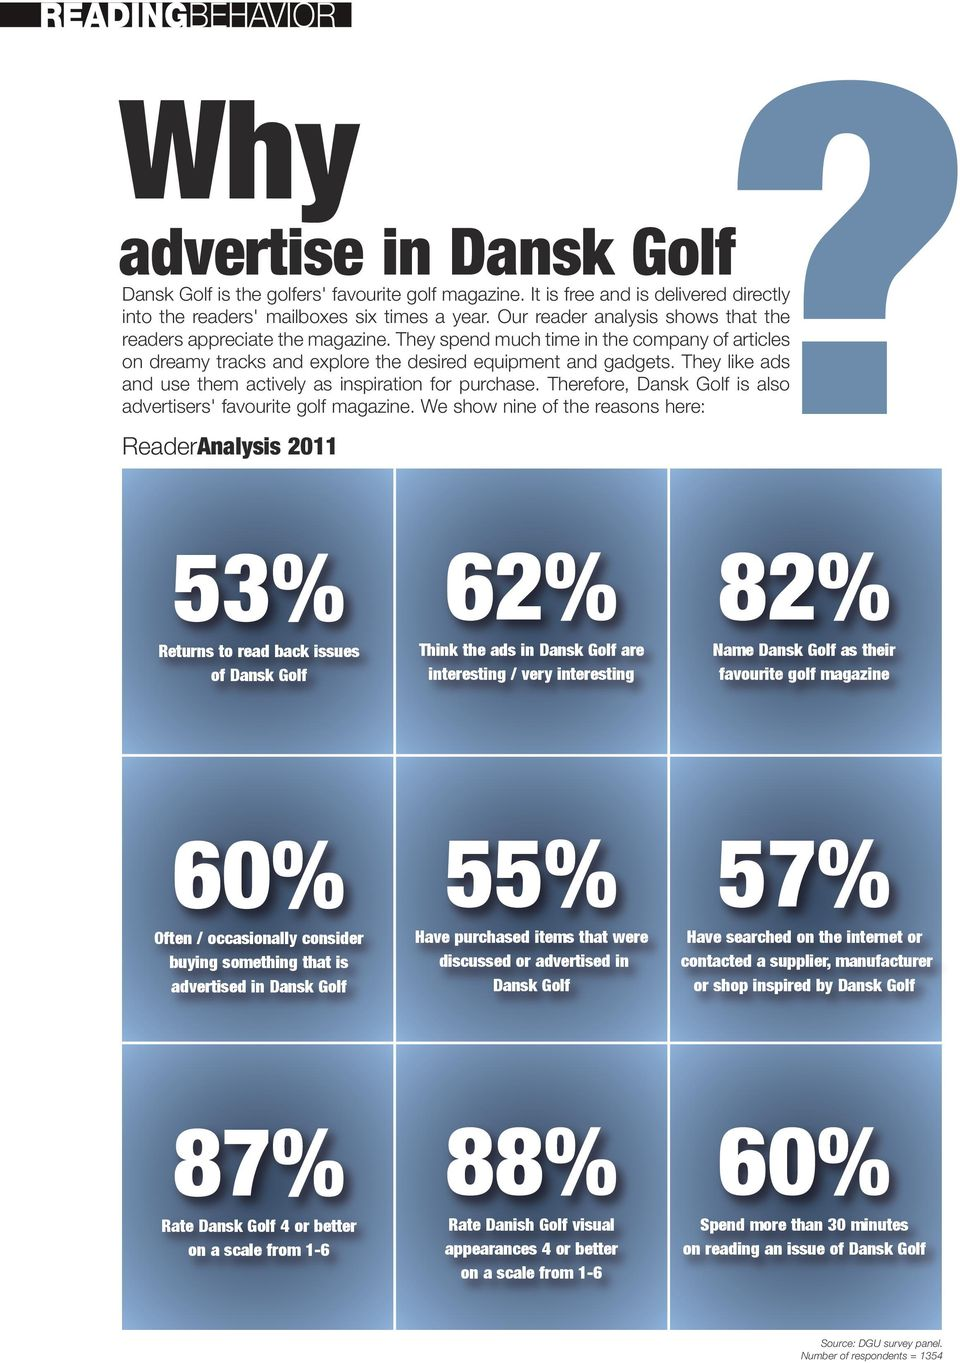 They like ads and use them actively as inspiration for purchase. Therefore, Dansk Golf is also advertisers' favourite golf magazine.